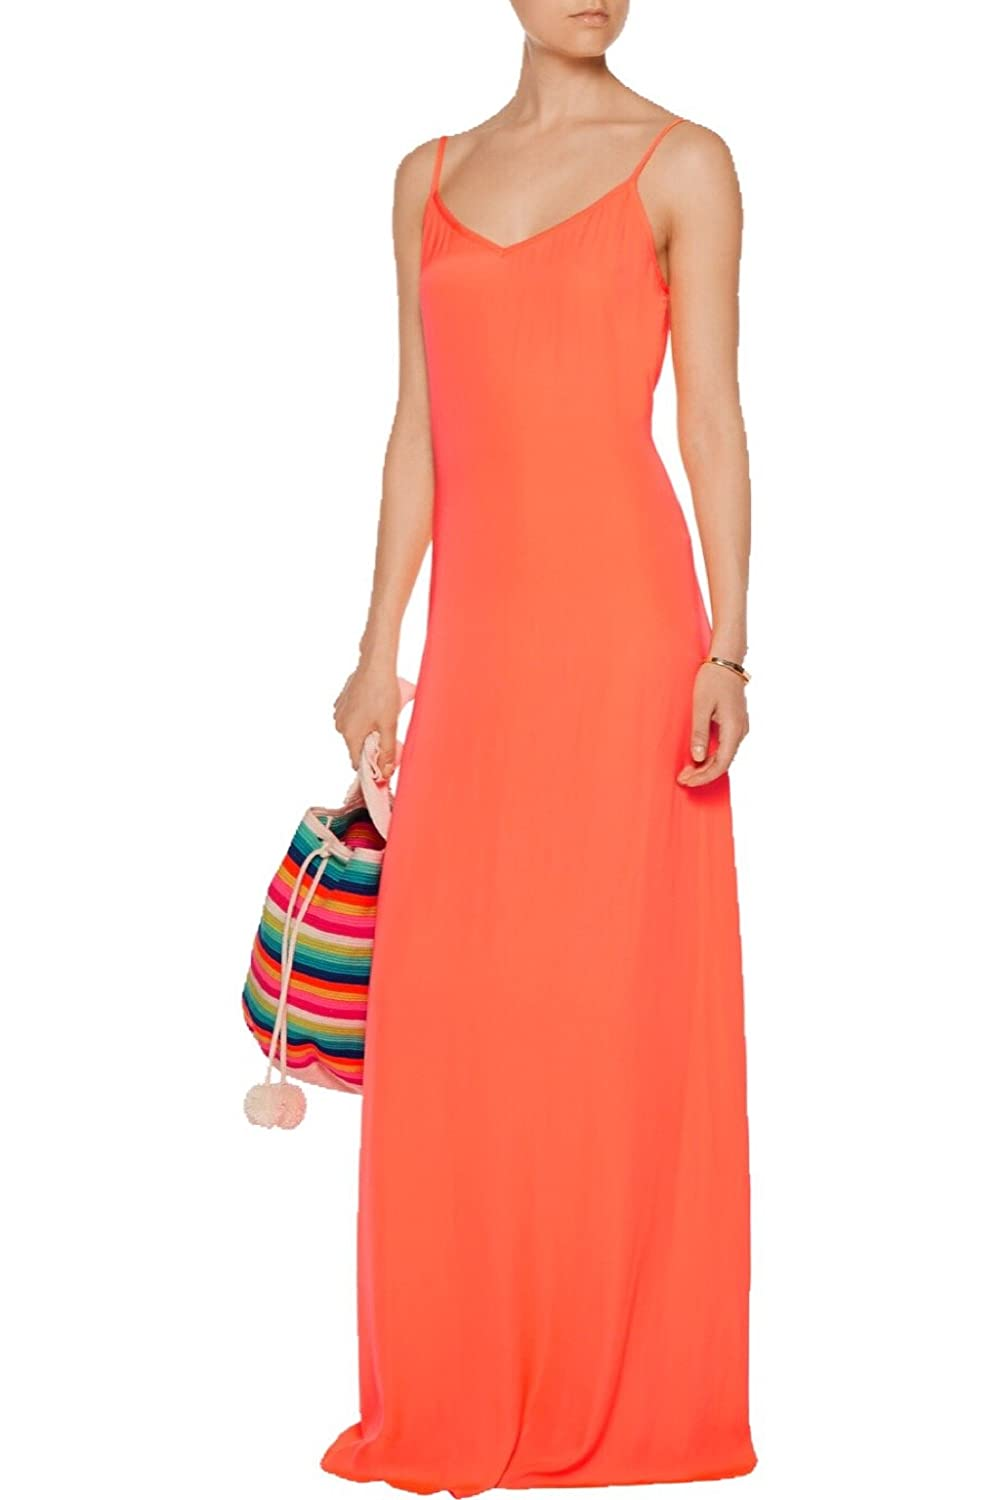 9f00738b4fa1b Tart Collections Women's Florence Maxi Dress, Hot Coral, Medium: Amazon.in:  Clothing & Accessories